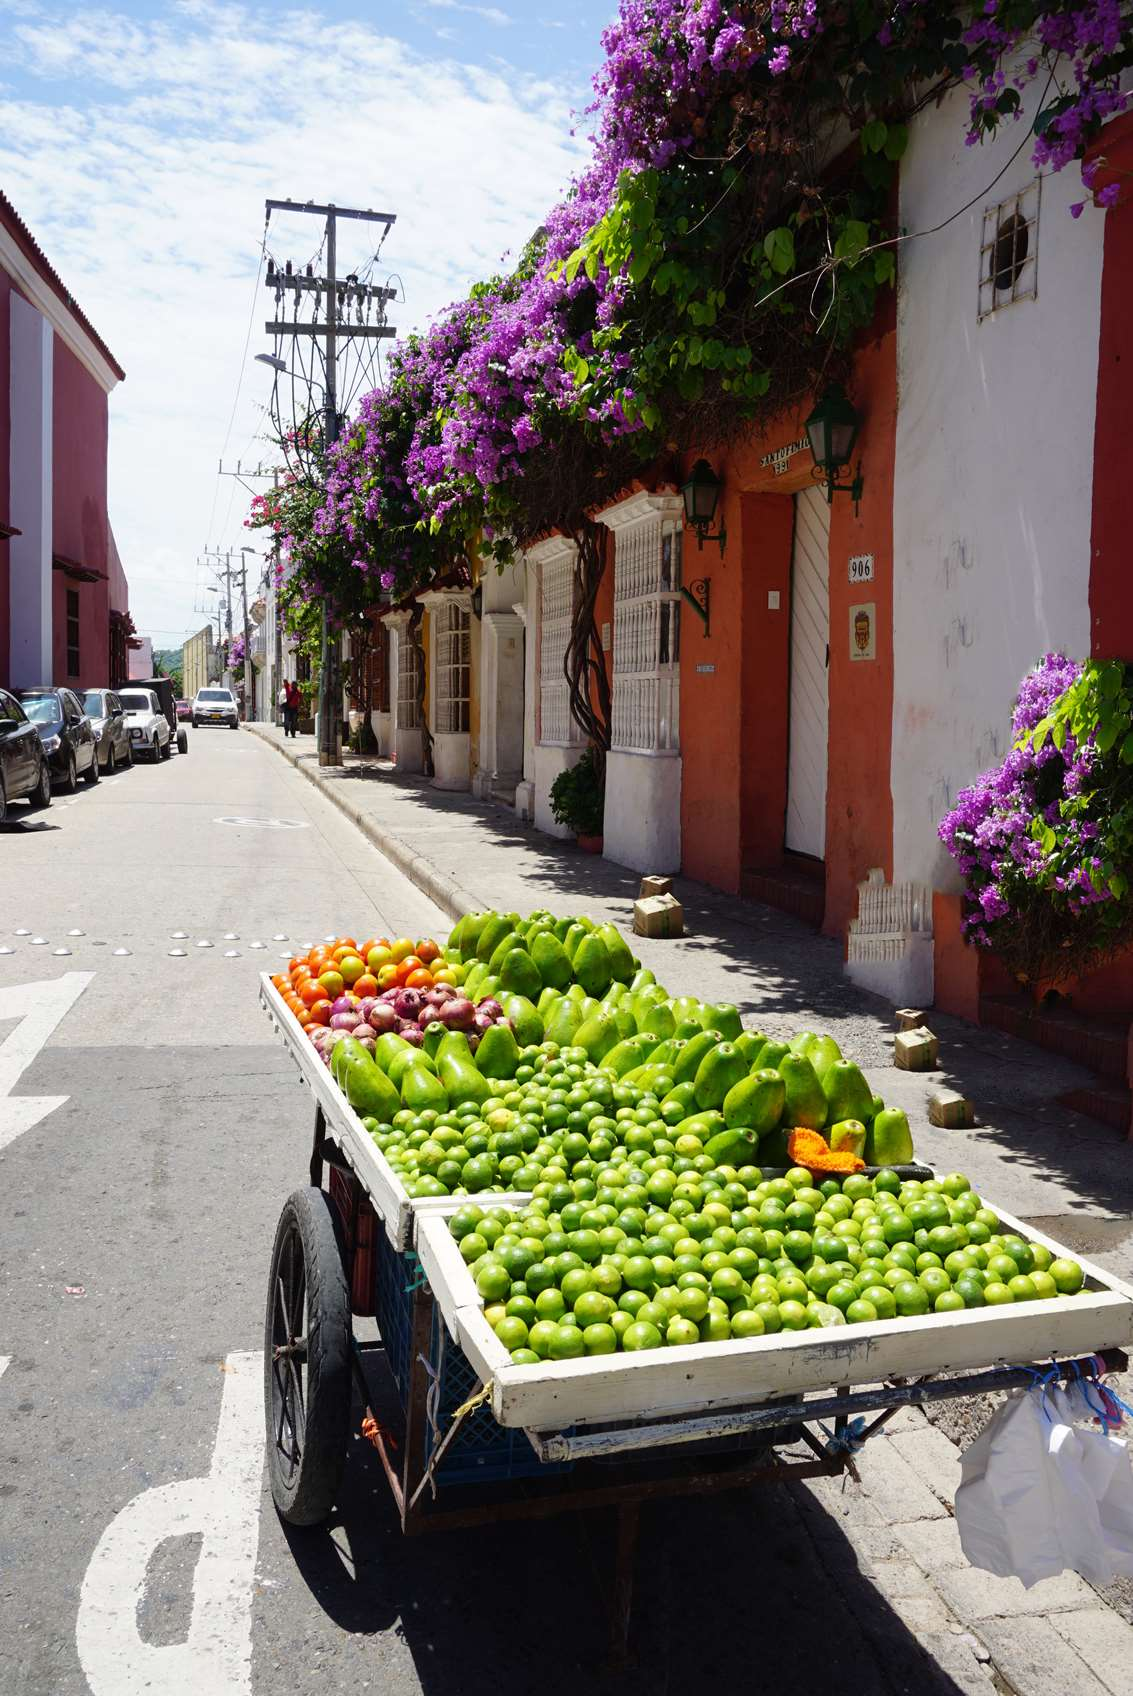 selling-huge-tasty-avocados-on-the-street-in-cartagena